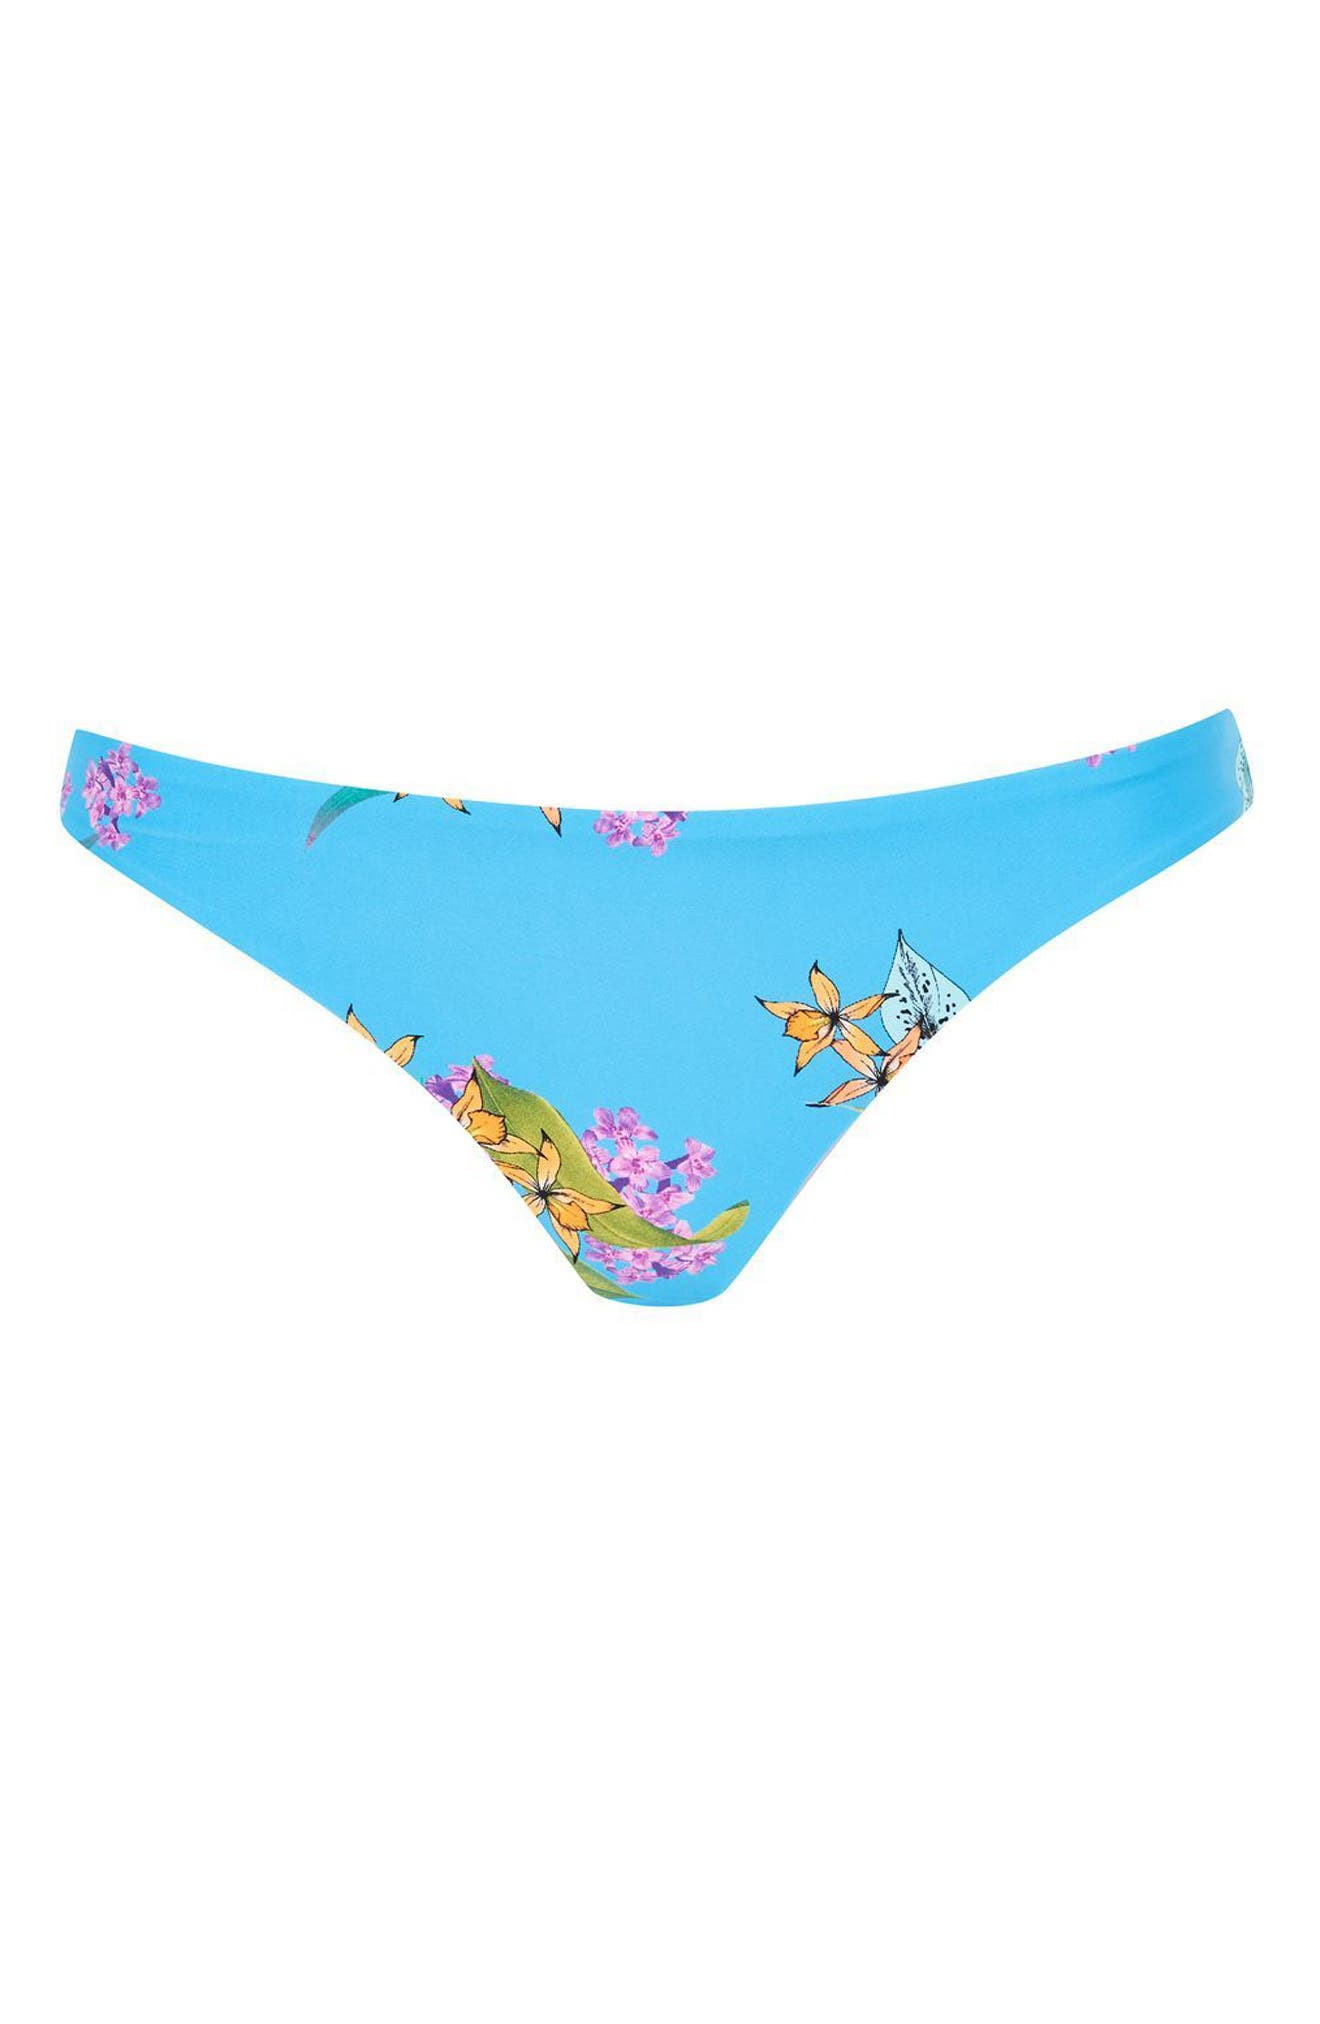 Tropical Print Bikini Bottoms,                             Alternate thumbnail 3, color,                             Blue Multi